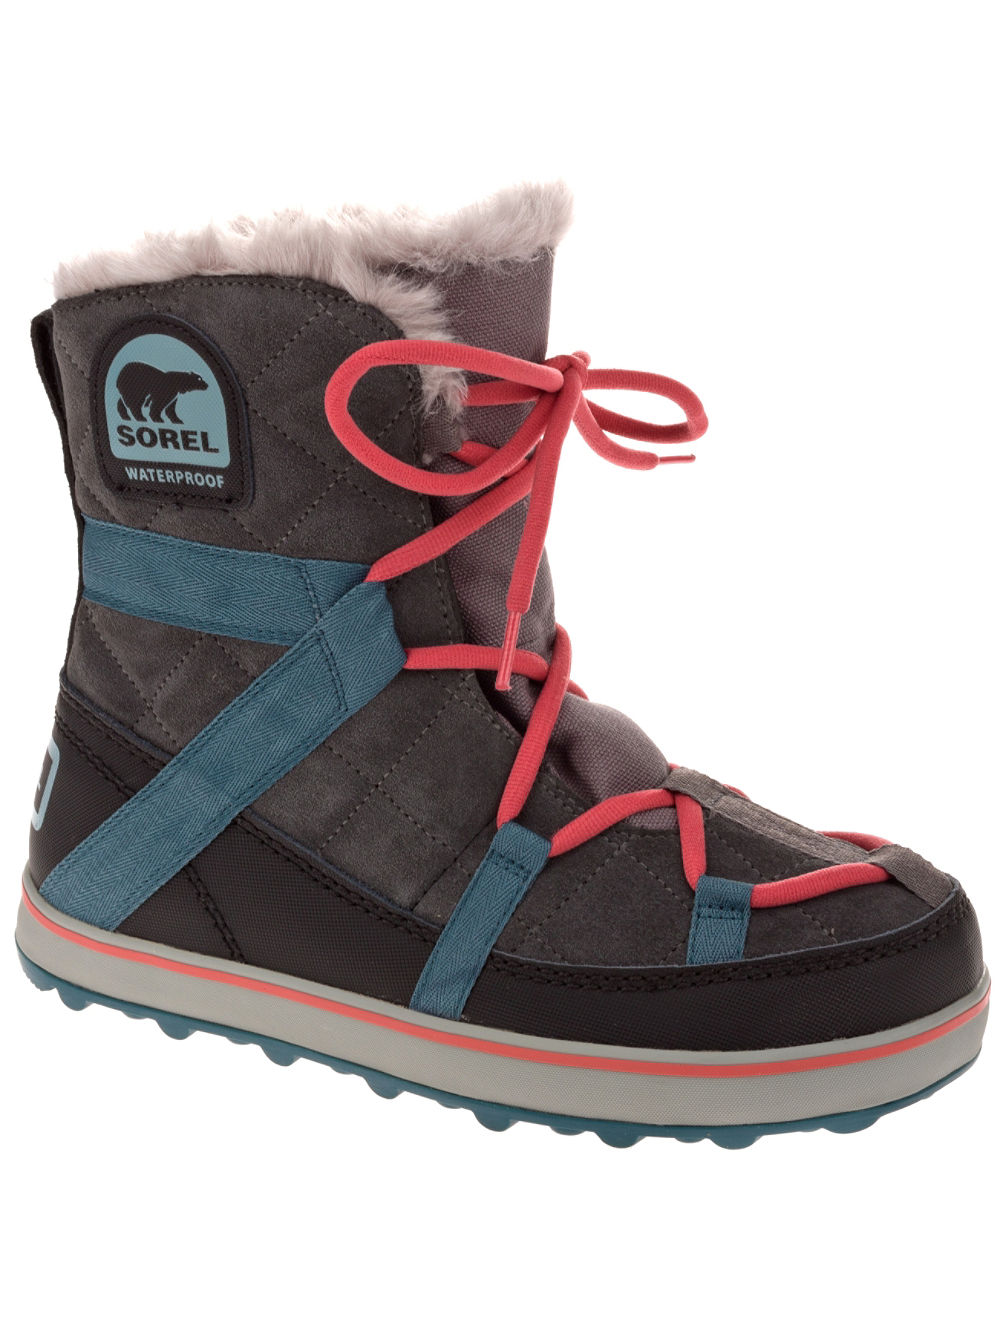 Sorel wintersport boots